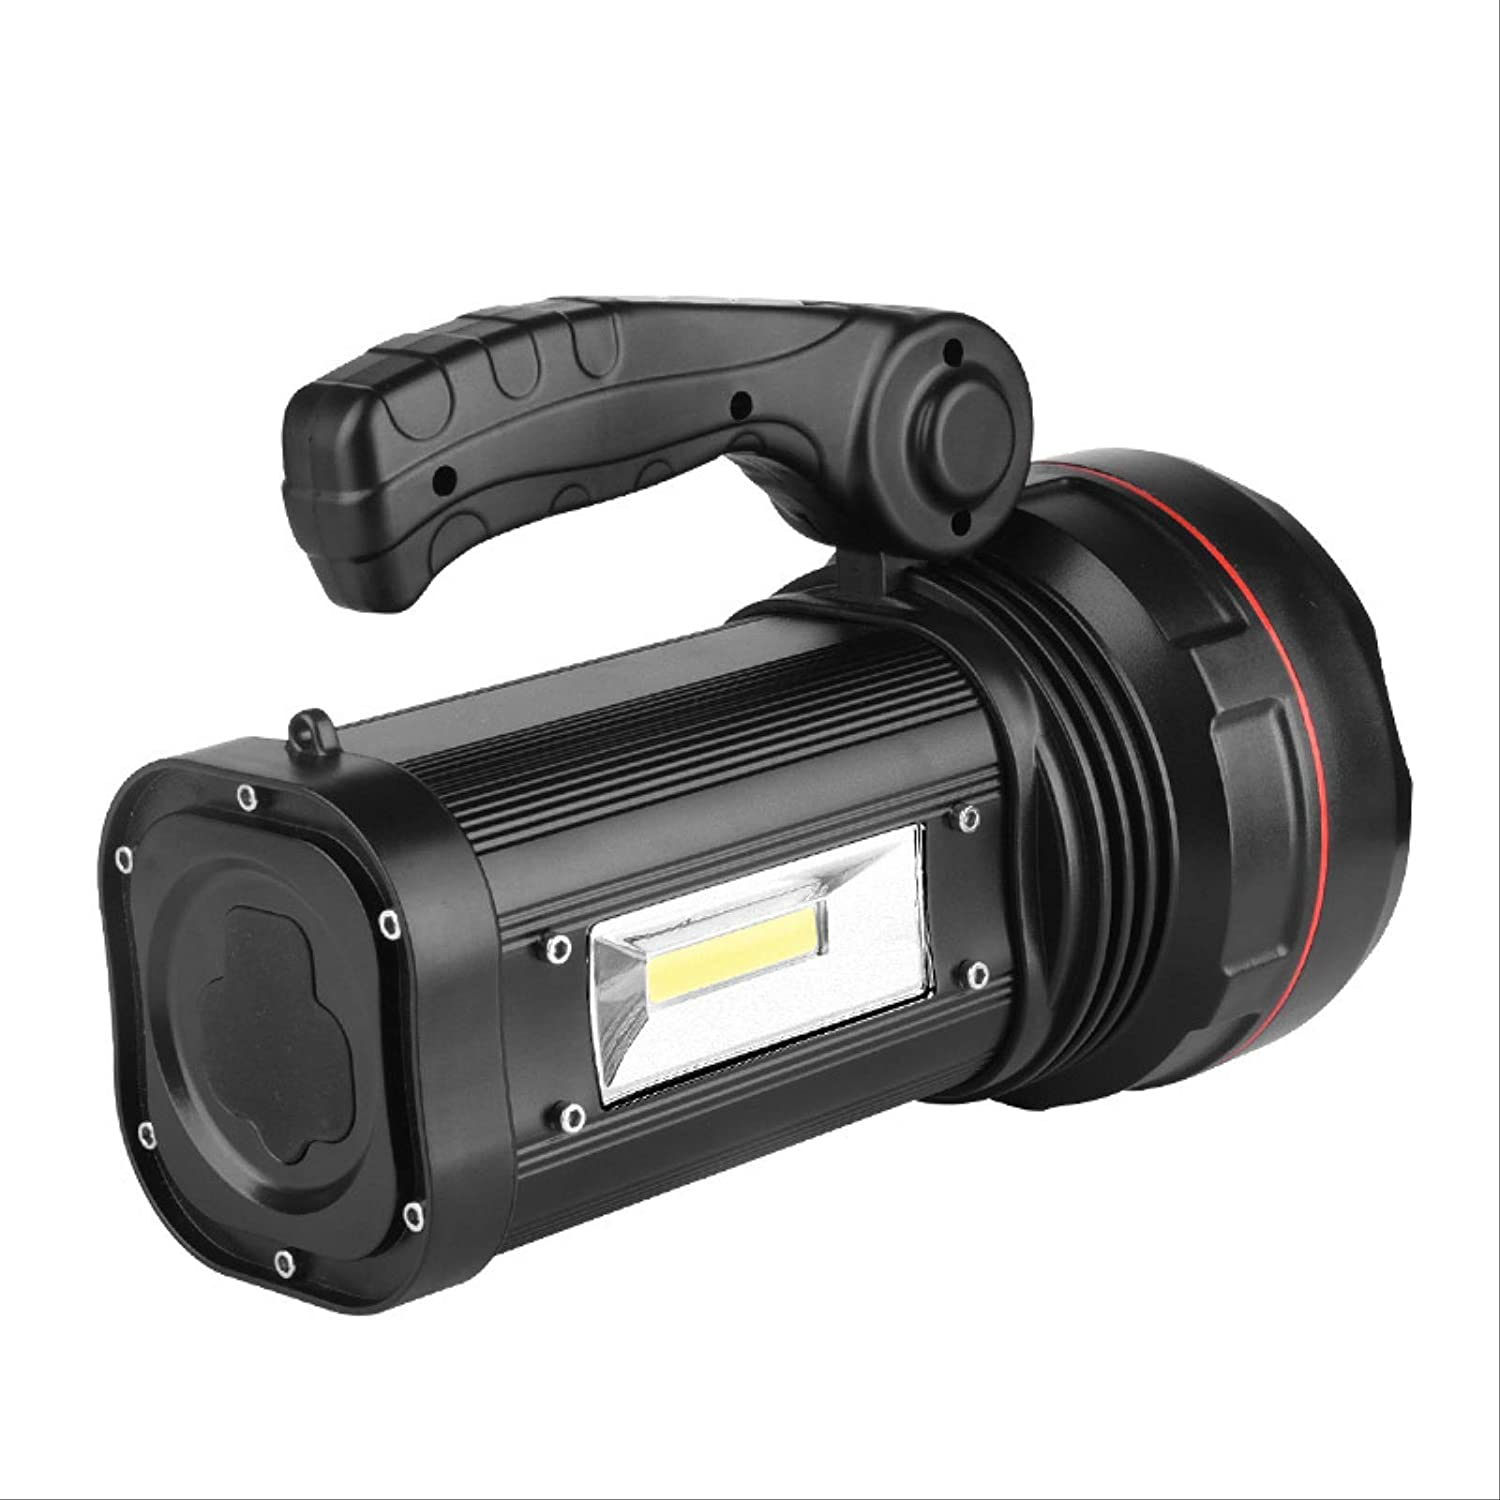 High-Power Portable Lamp Searchlight Led Charging Emergency Mobile Power Supply Black Single Side Light Battery Black Single Side Lamp 4 Sections 18650